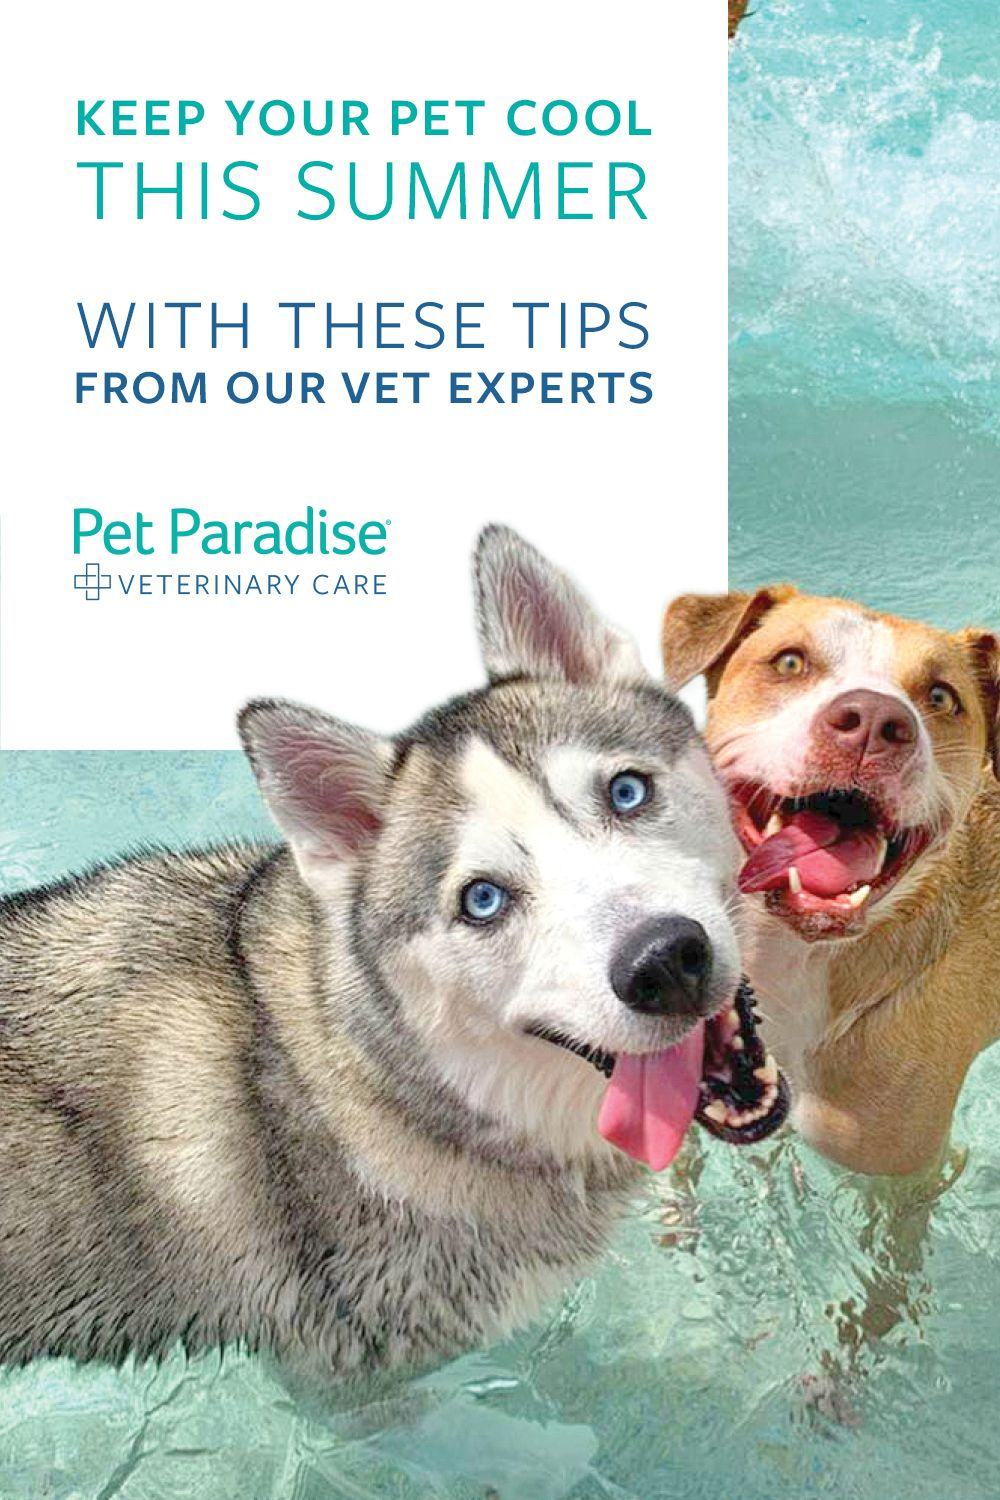 Vet Expert Tips To Keep Your Pet Cool In 2020 Pet Paradise Pets Vets